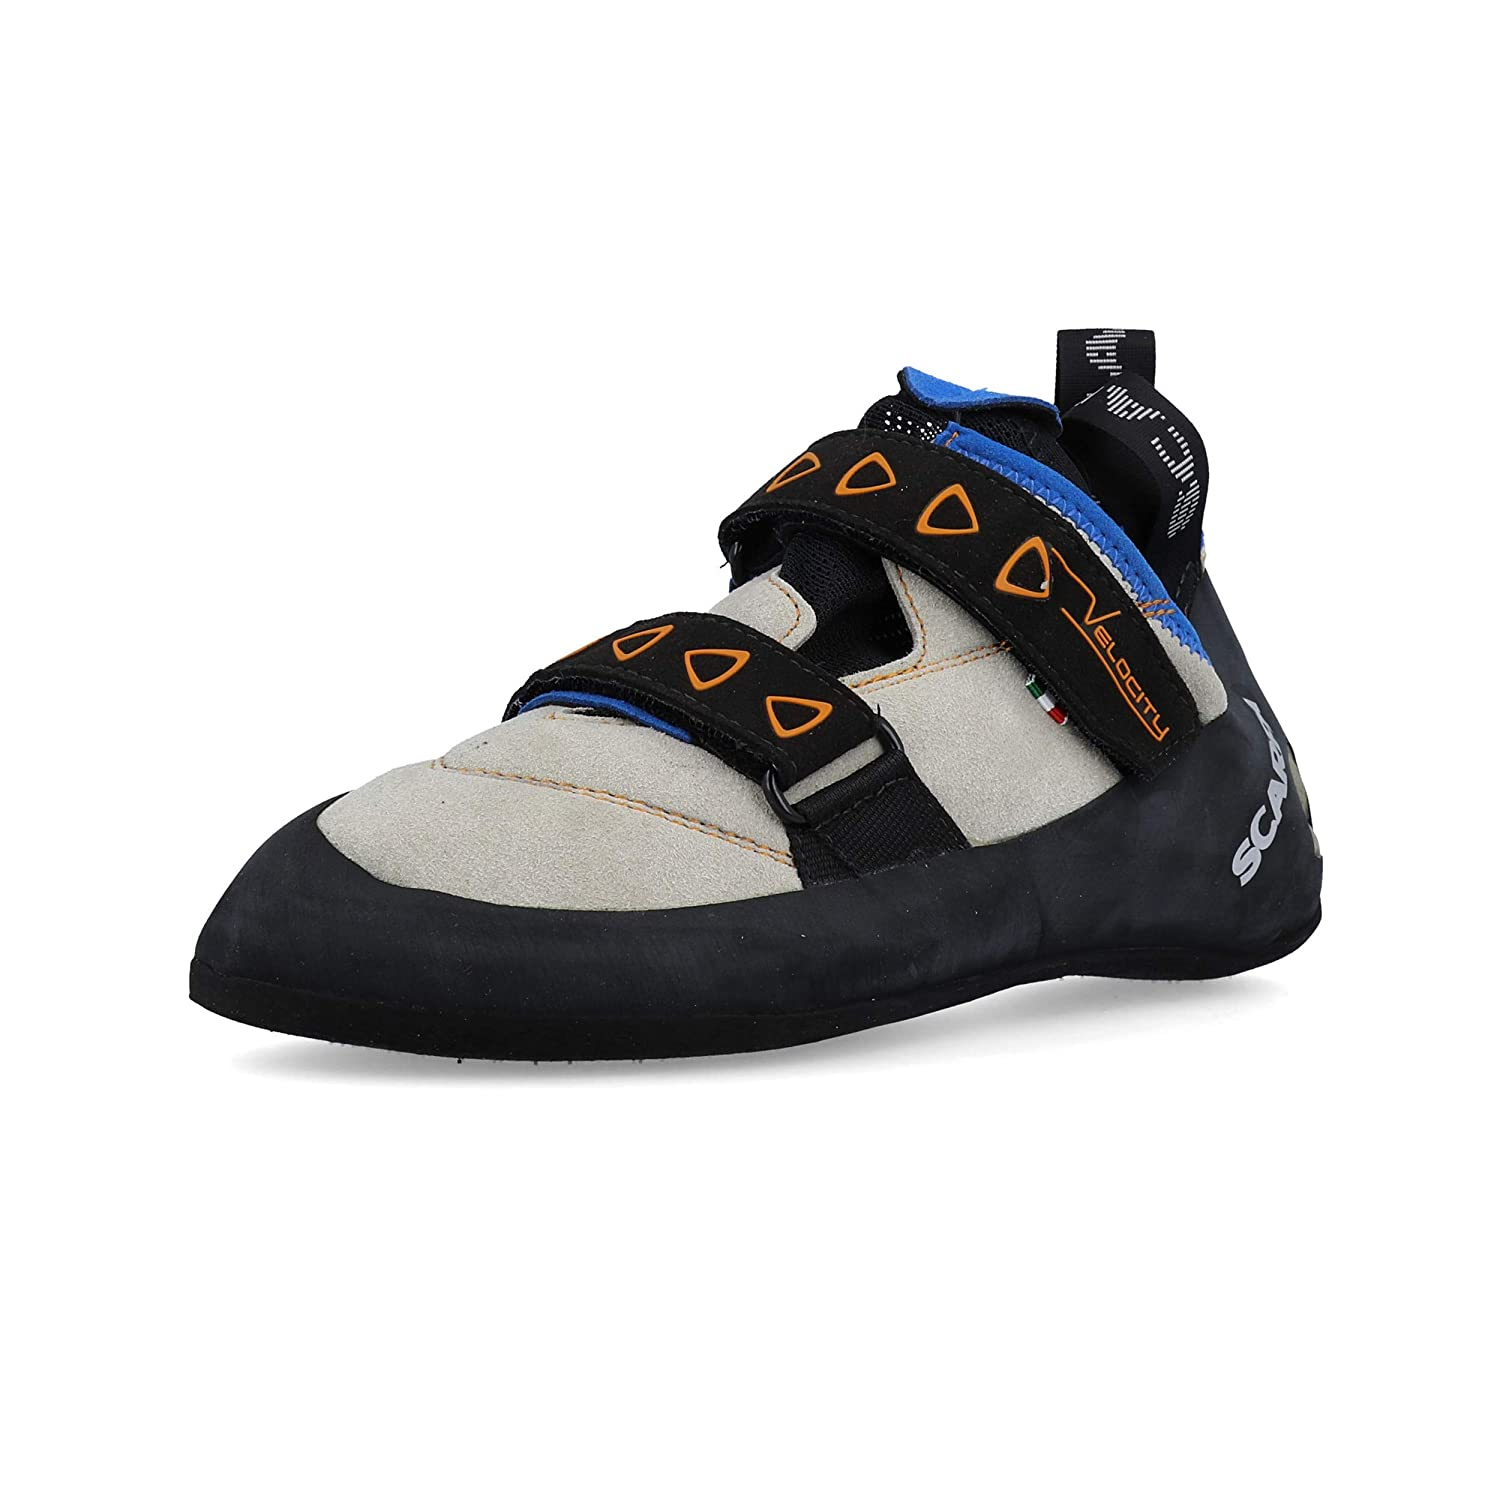 Homme Scarpa Chaussure